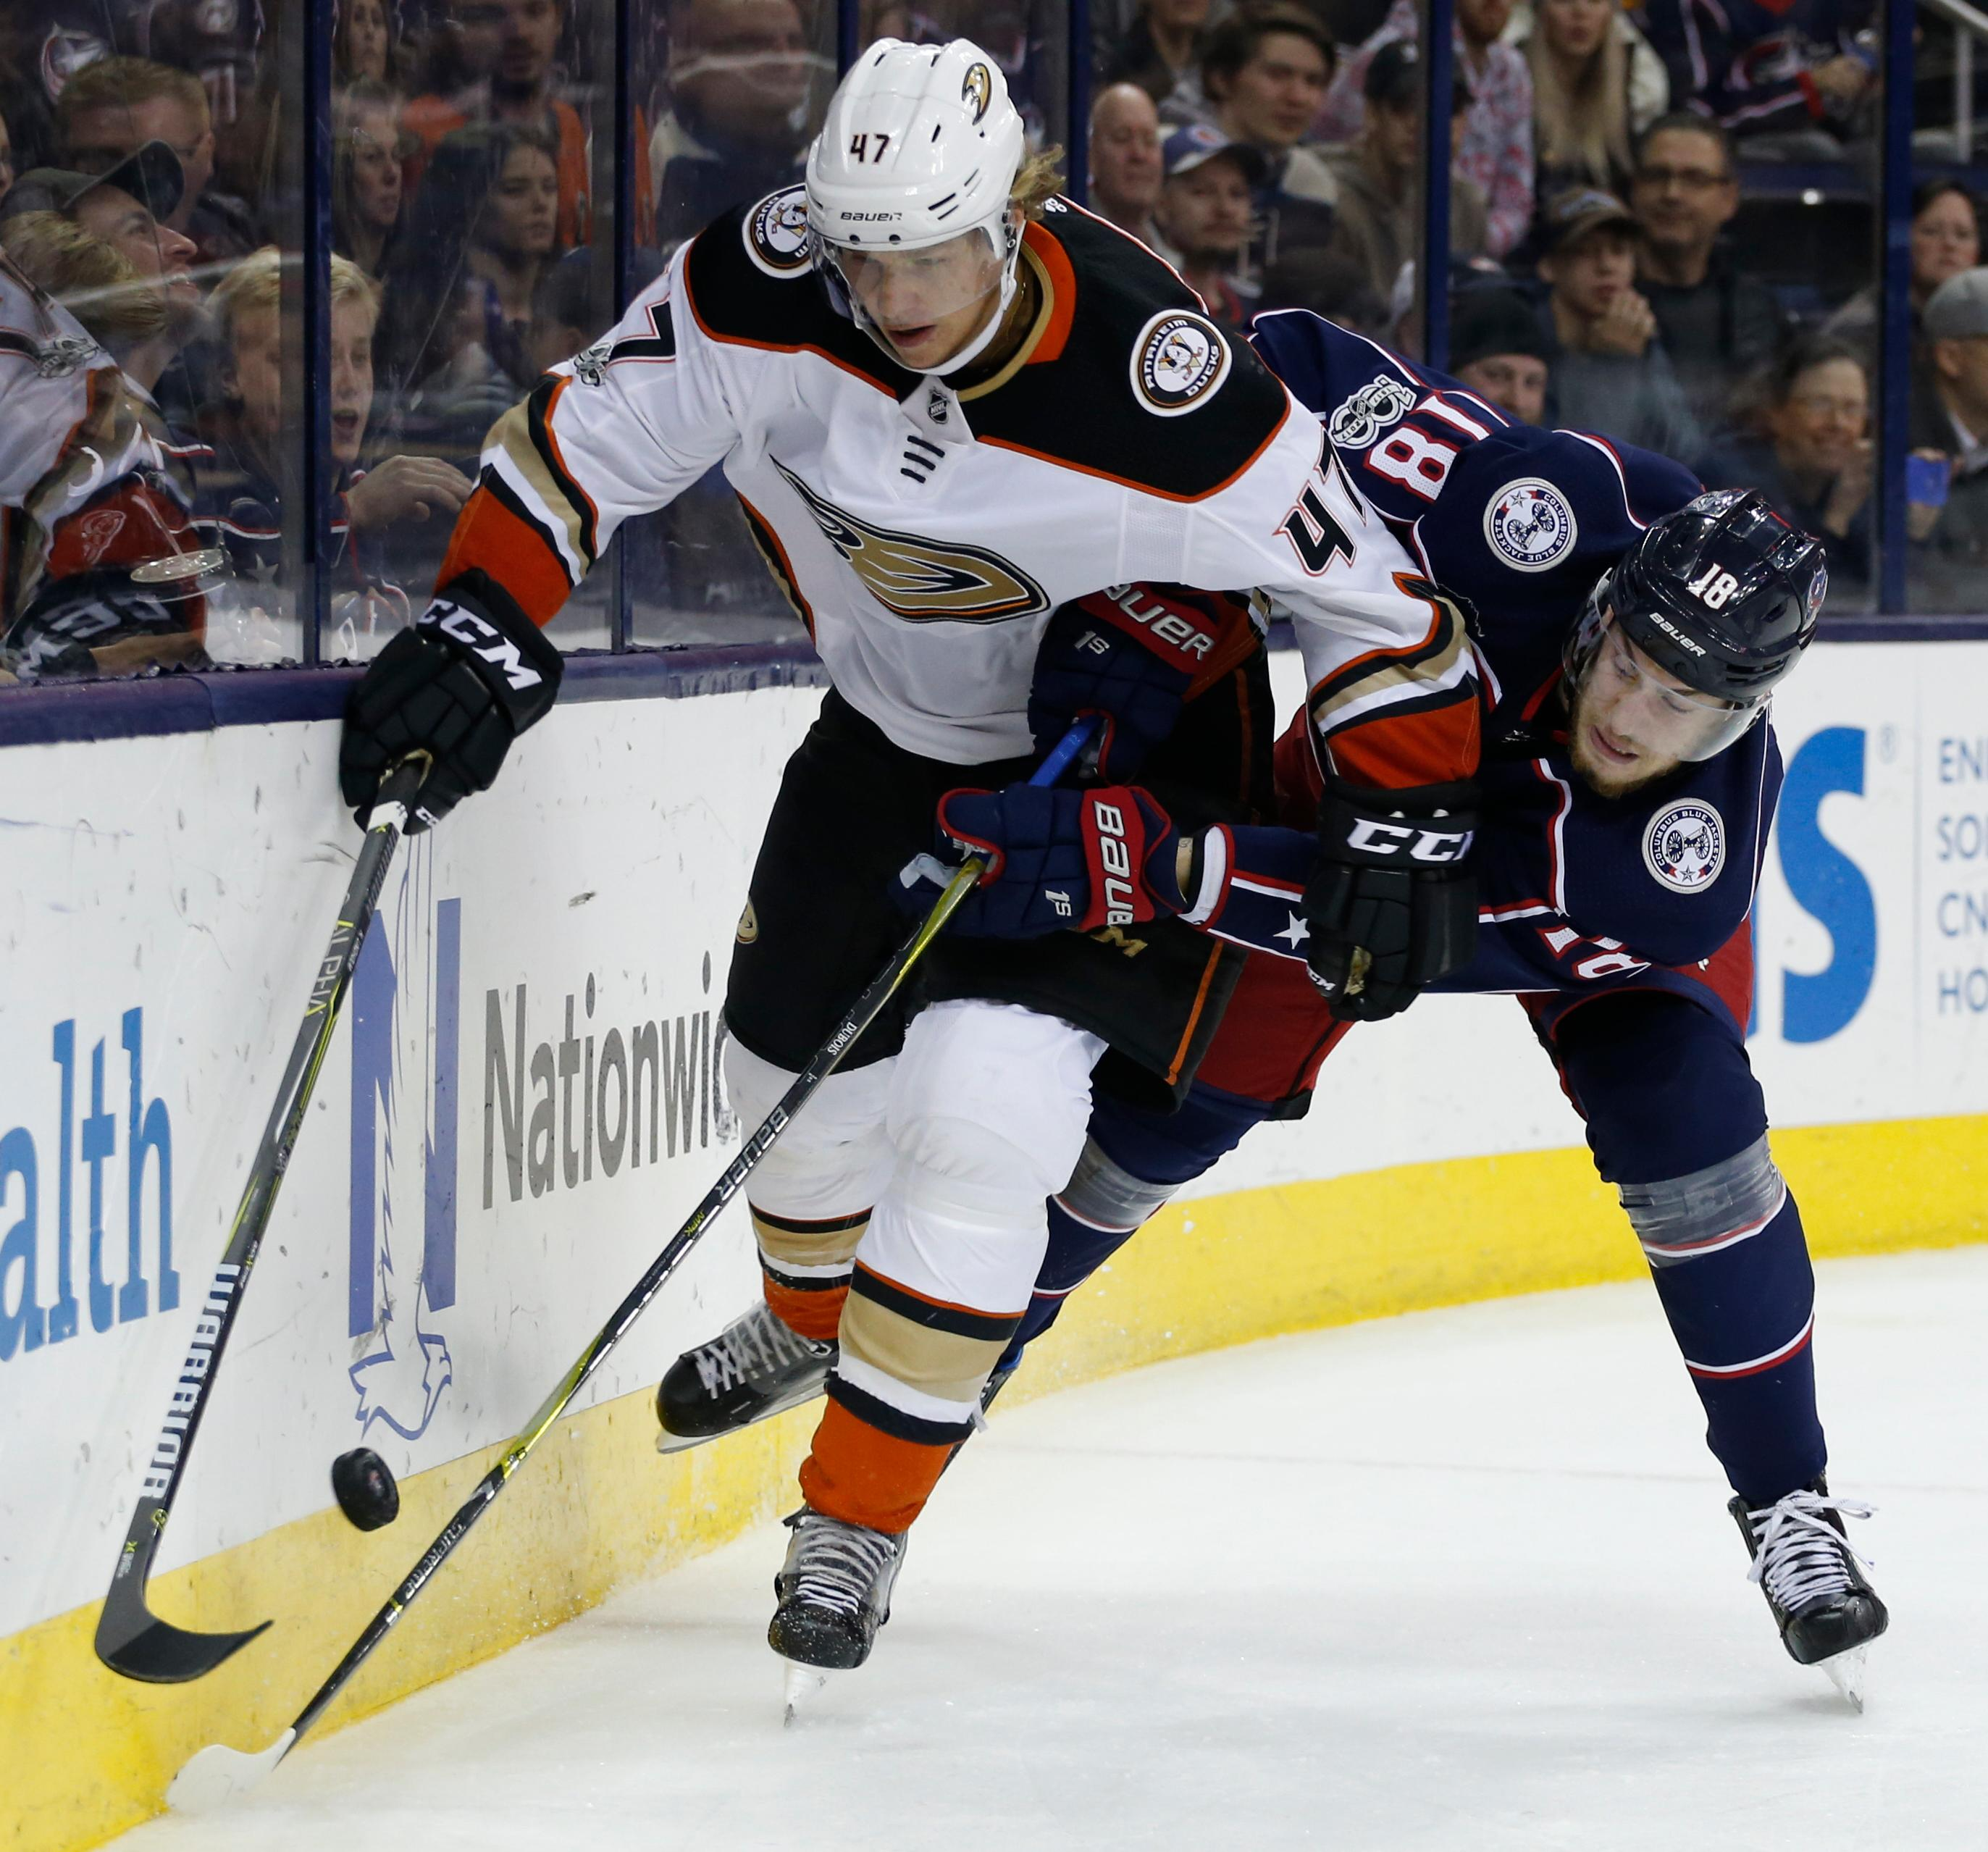 Anaheim Ducks' Hampus Lindholm, left, of Sweden, and Columbus Blue Jackets' Pierre-Luc Dubois fight for the puck during the second period of an NHL hockey game Friday, Dec. 1, 2017, in Columbus, Ohio. (AP Photo/Jay LaPrete)